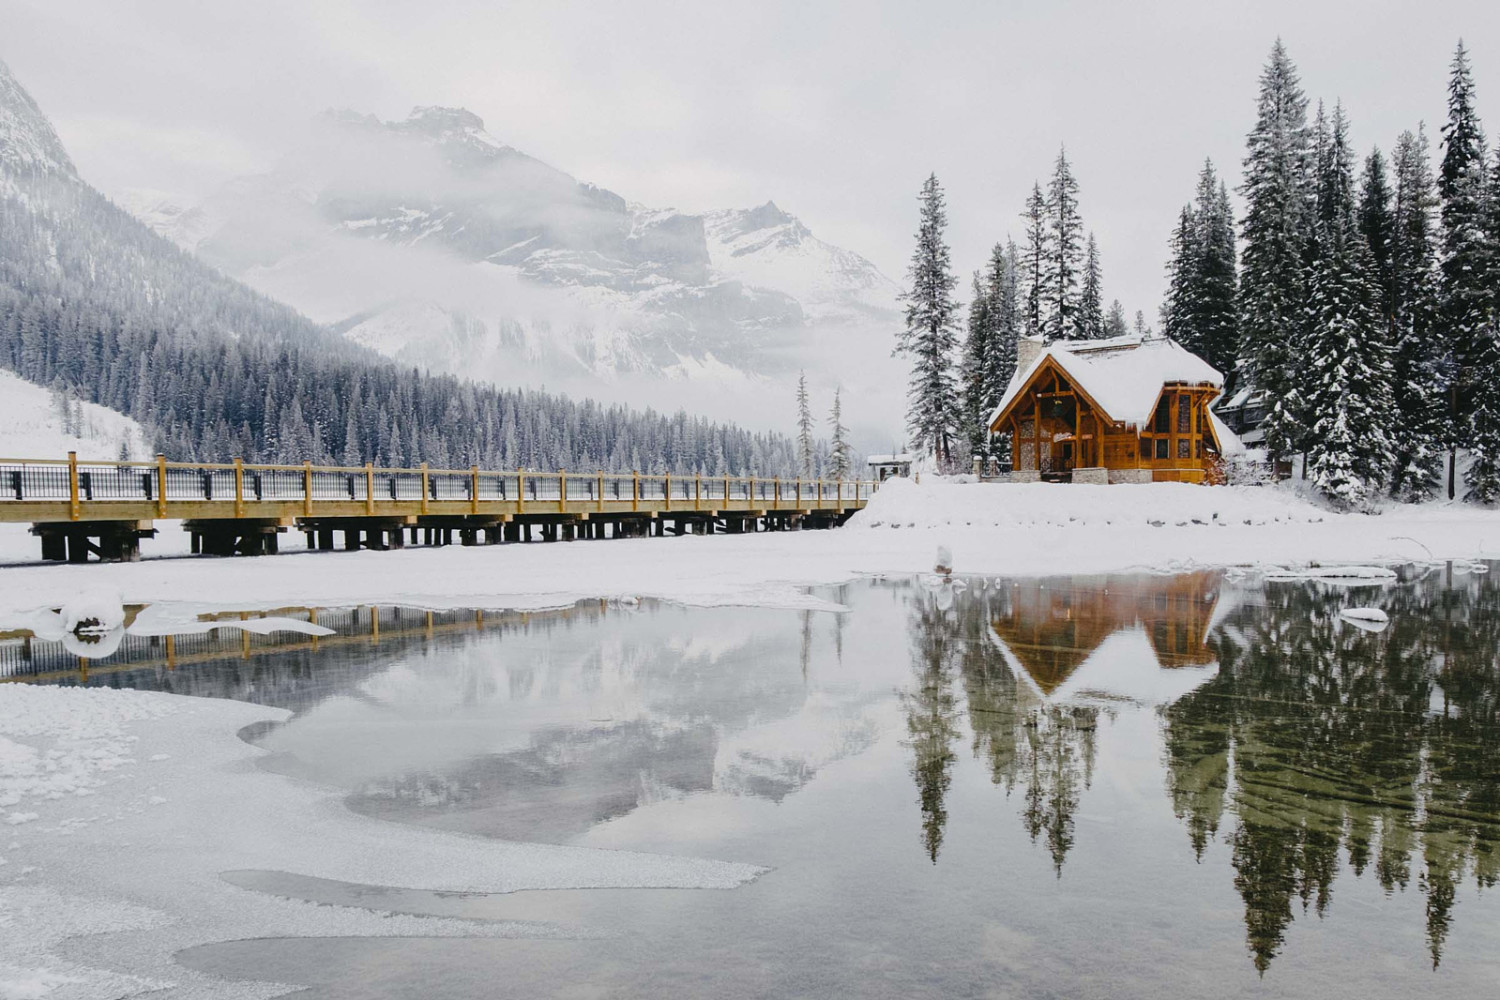 Through Ice, Rock, and Snow: Photos from a Winter Roadtrip to the Canadian Rockies